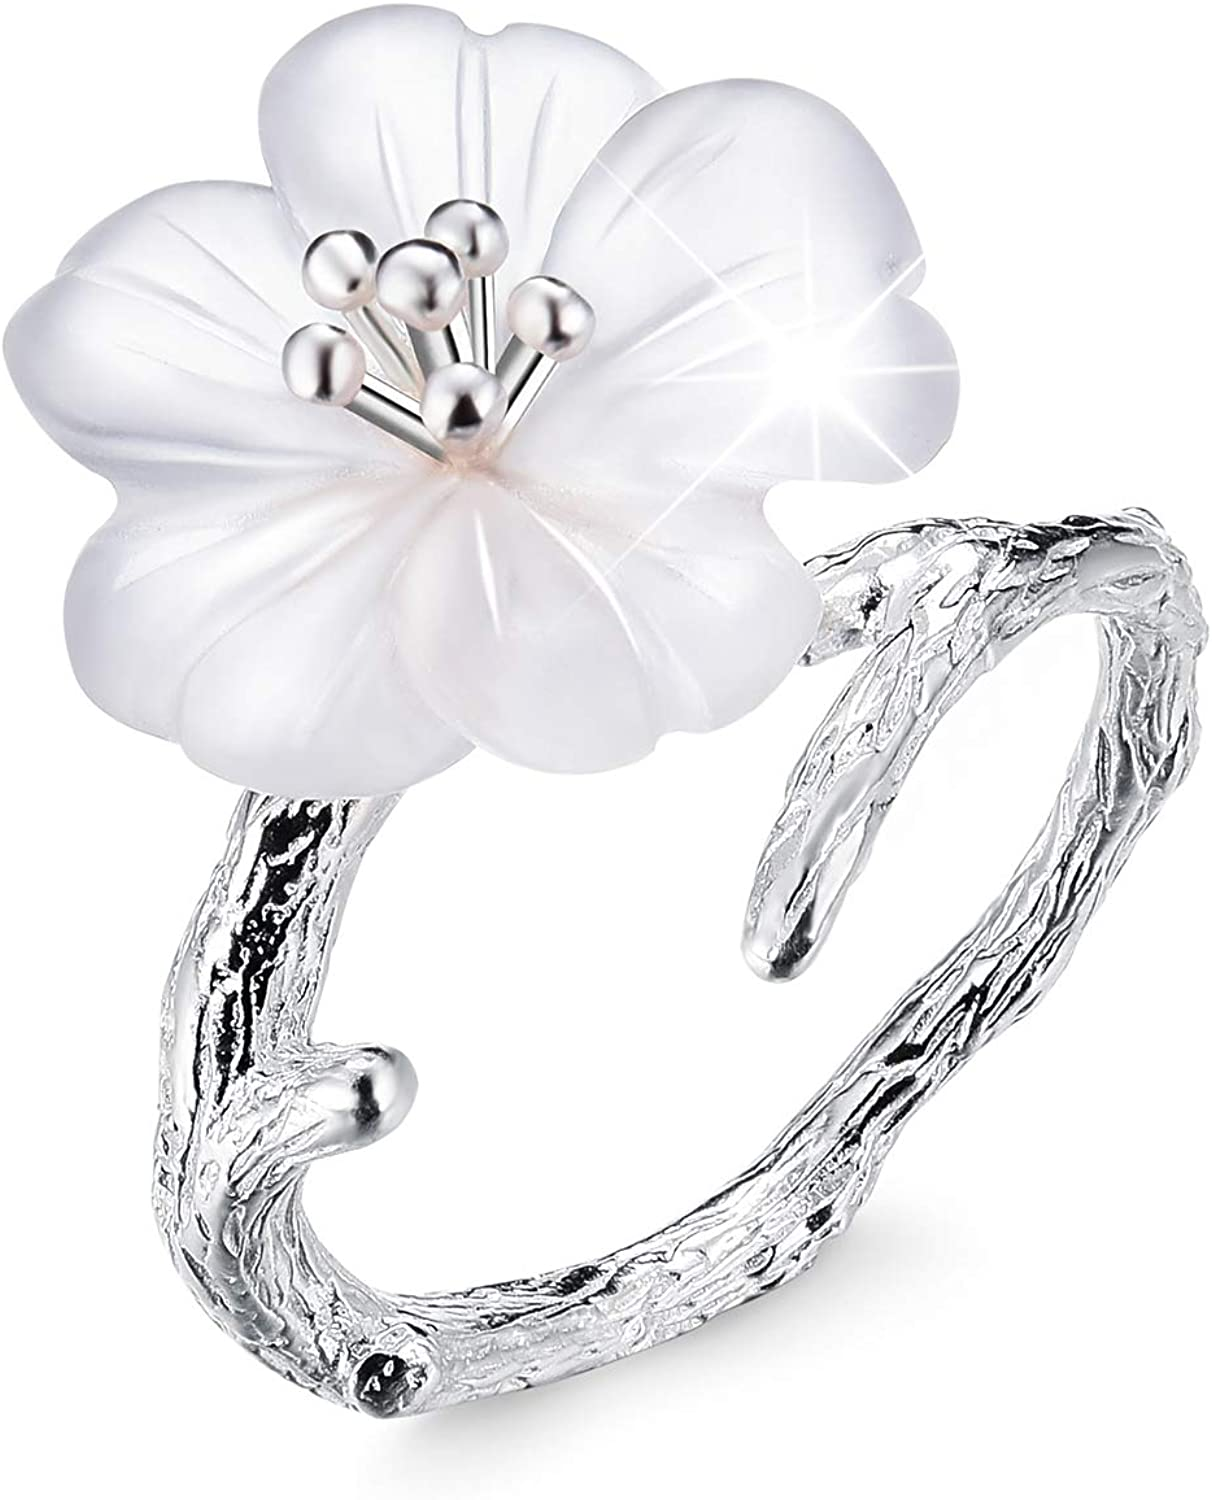 Antique Silver Ring for Women Statement Ring Size 8 Fashion Jewelry Large Full Crystal Flower Ring